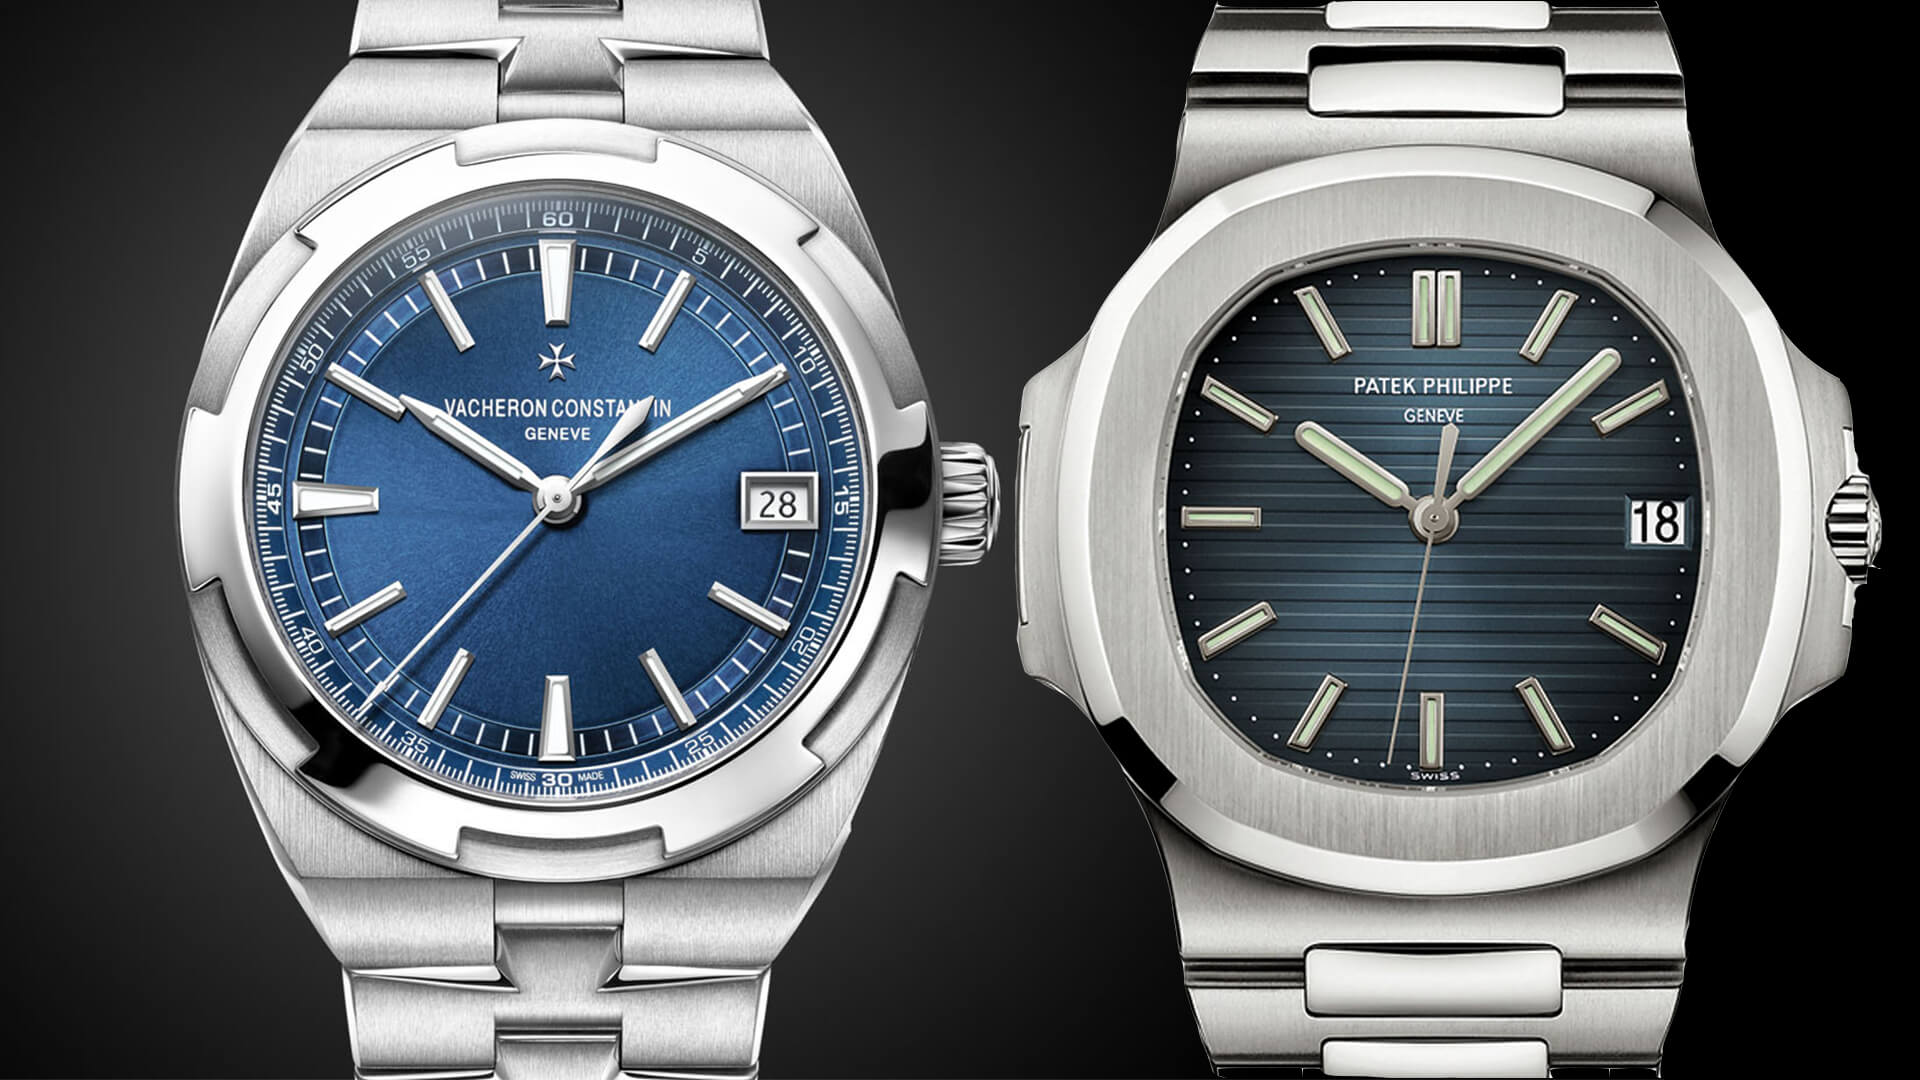 ASKTNH LIVE: Is the Vacheron Constantin Overseas Better Than the Patek Philippe Nautilus?